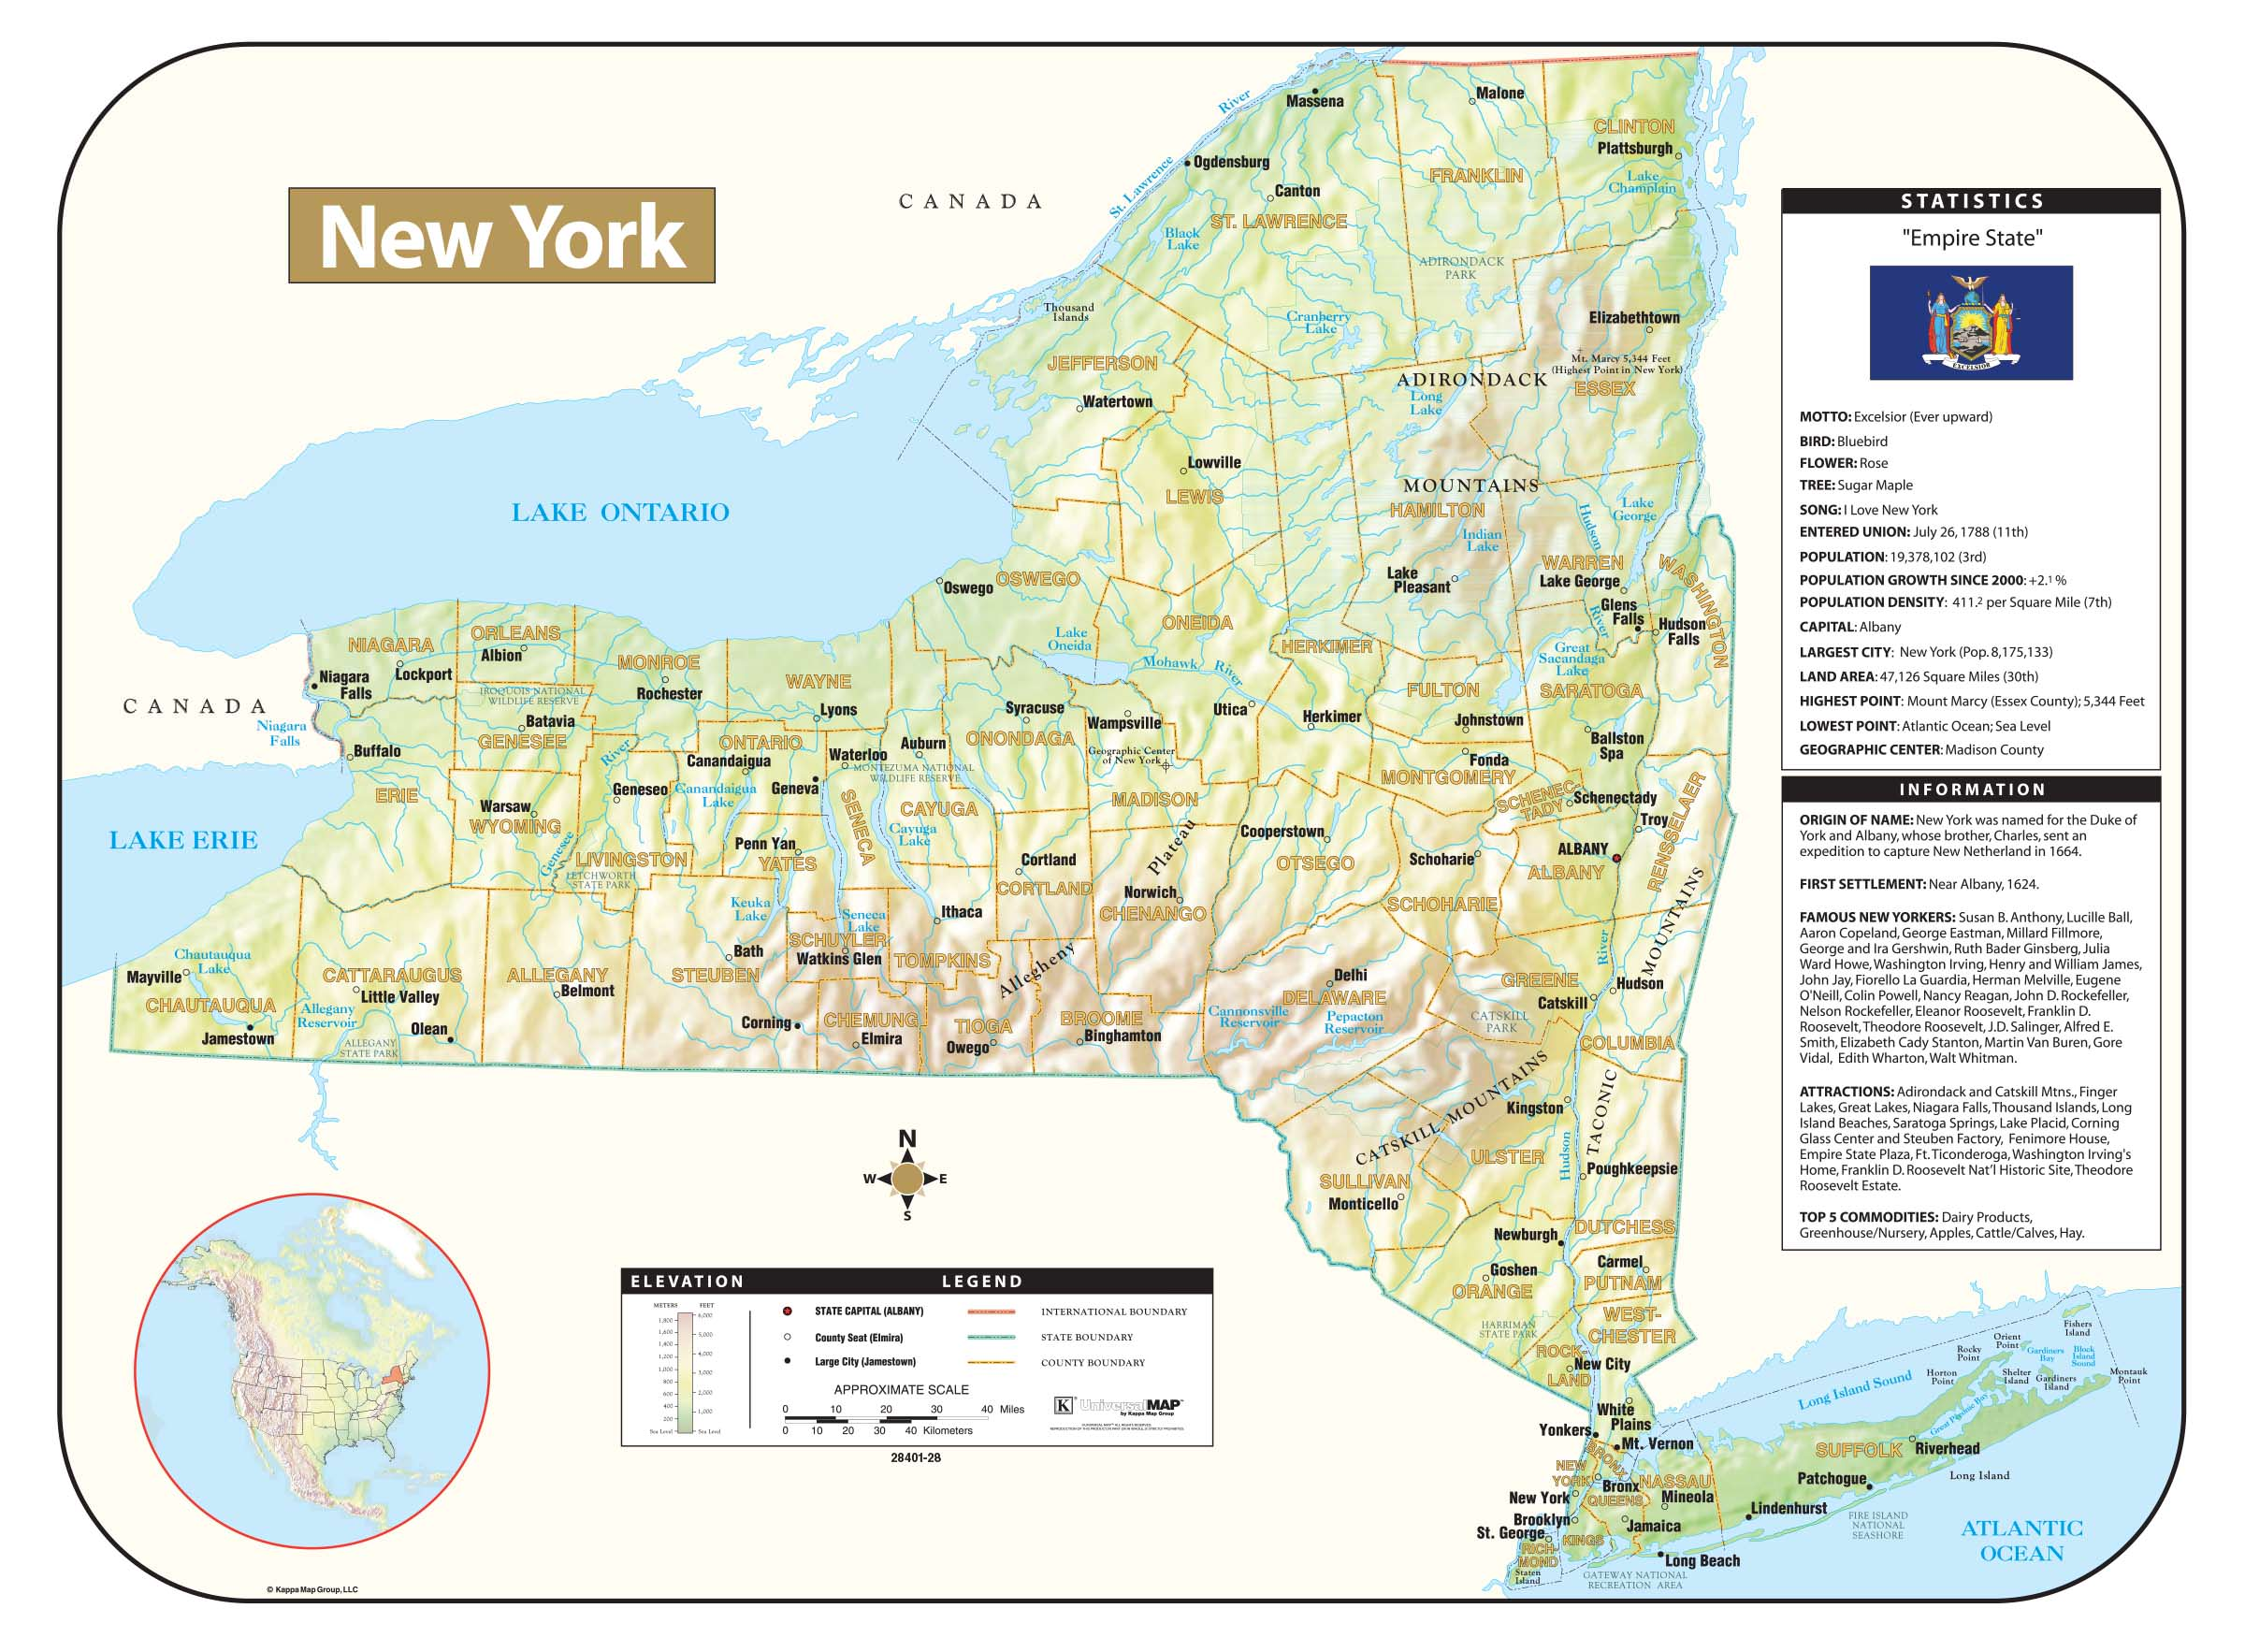 New York Shaded Relief Map